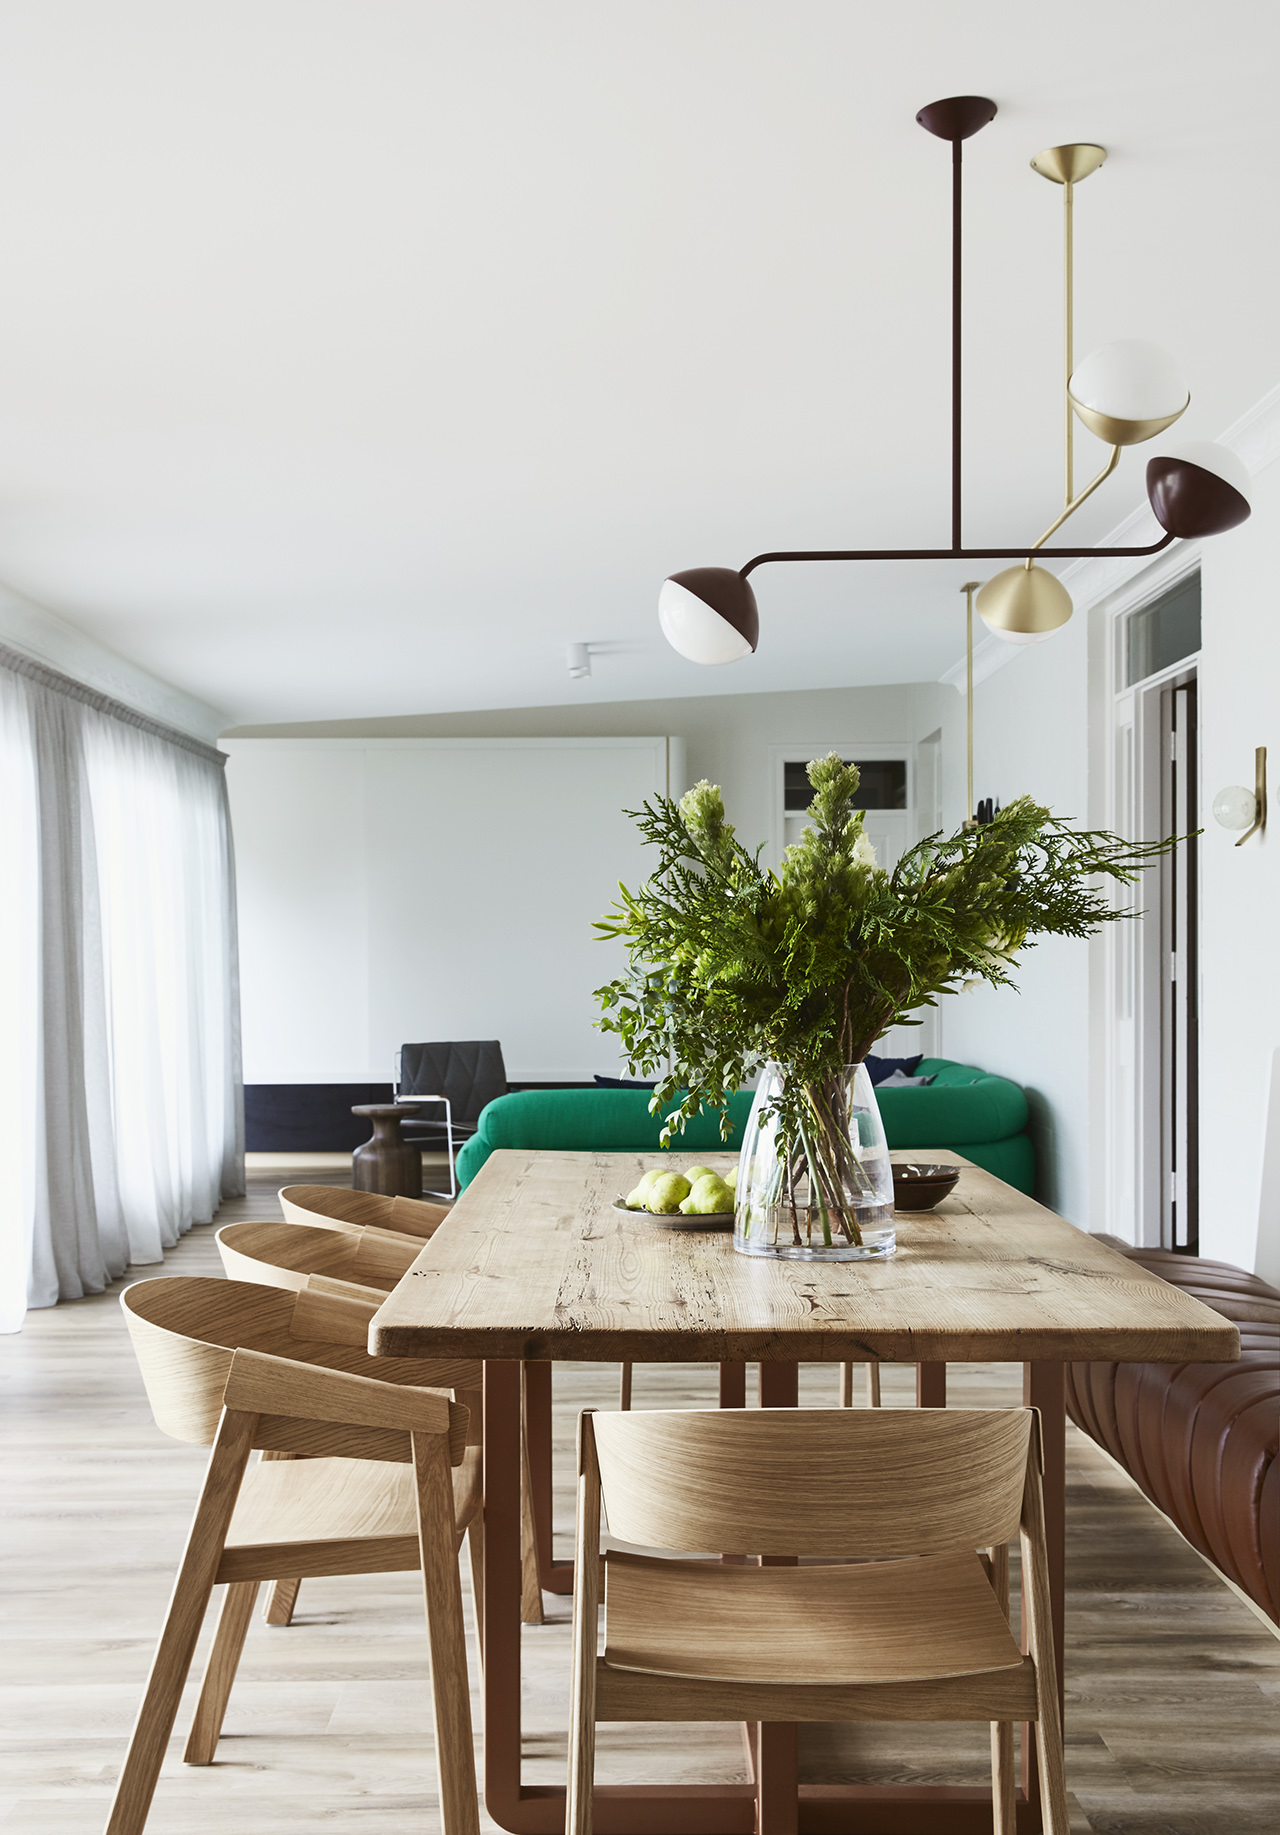 Balgownie House by Trentini Design. Photography Amanda Prior.